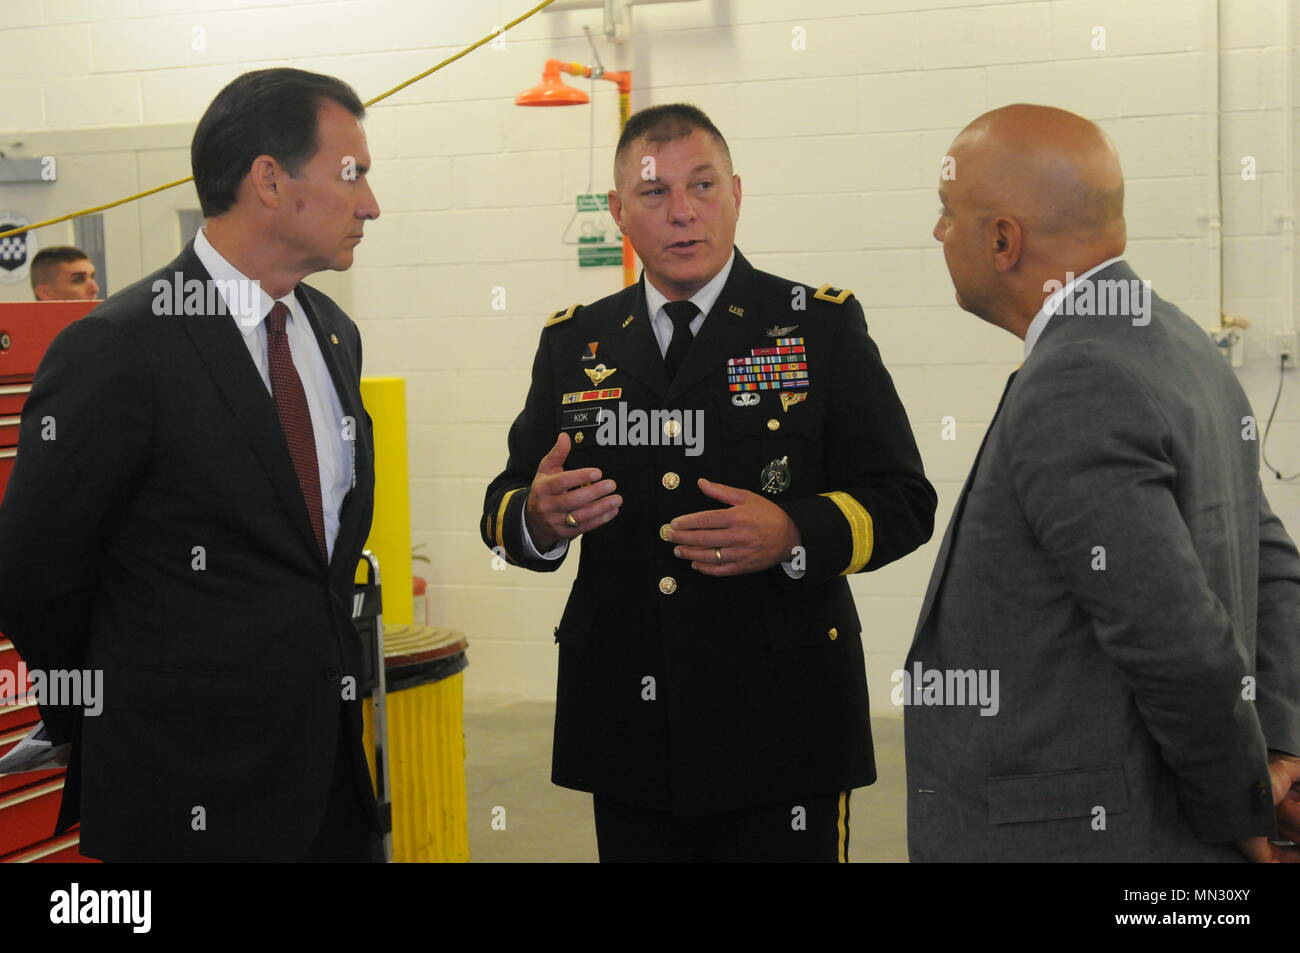 170813-A-FZ134-004  Maj. Gen. Troy D. Kok, commanding general of the U.S. Army Reserve's 99th Regional Support Command, speaks with U.S. Congressman Thomas R. Suozzi and New York City Council Member, 19th District, Queens, Paul A. Vallone at the ribbon-cutting ceremony Aug. 17 for the revitalized AMSA/OMS (Area Maintenance Support Activity/Organizational Maintenance Shop) in Fort Totten. The center underwent a $12.6 million full-facility revitalization, allowing technicians to perform in an up-to-date facility to meet readiness standards as well as train military unit mechanics as needed so th Stock Photo